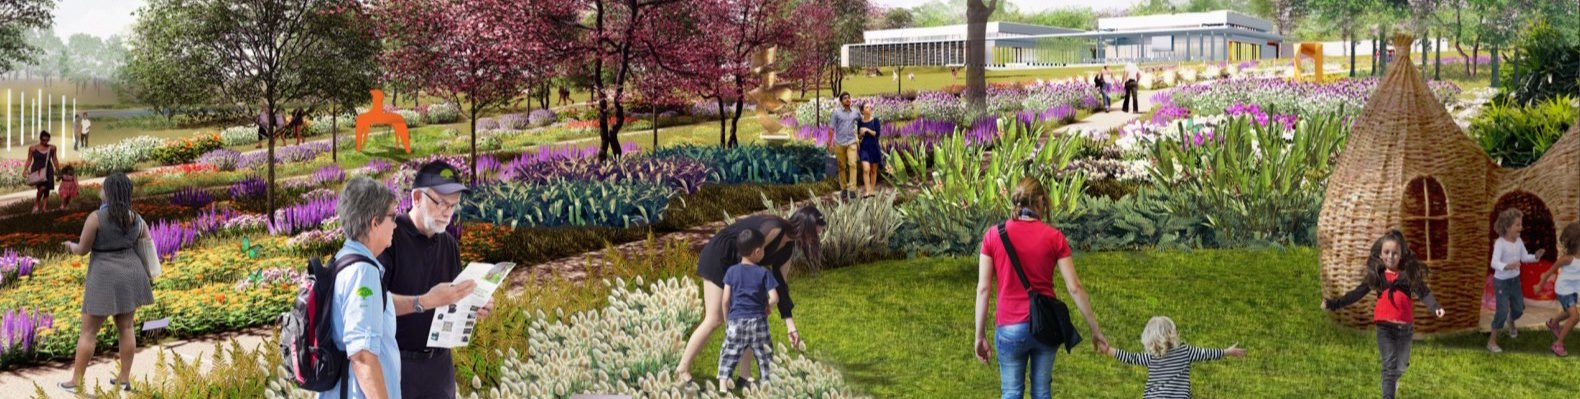 rendering of people walking through park with colorful flowers and plants